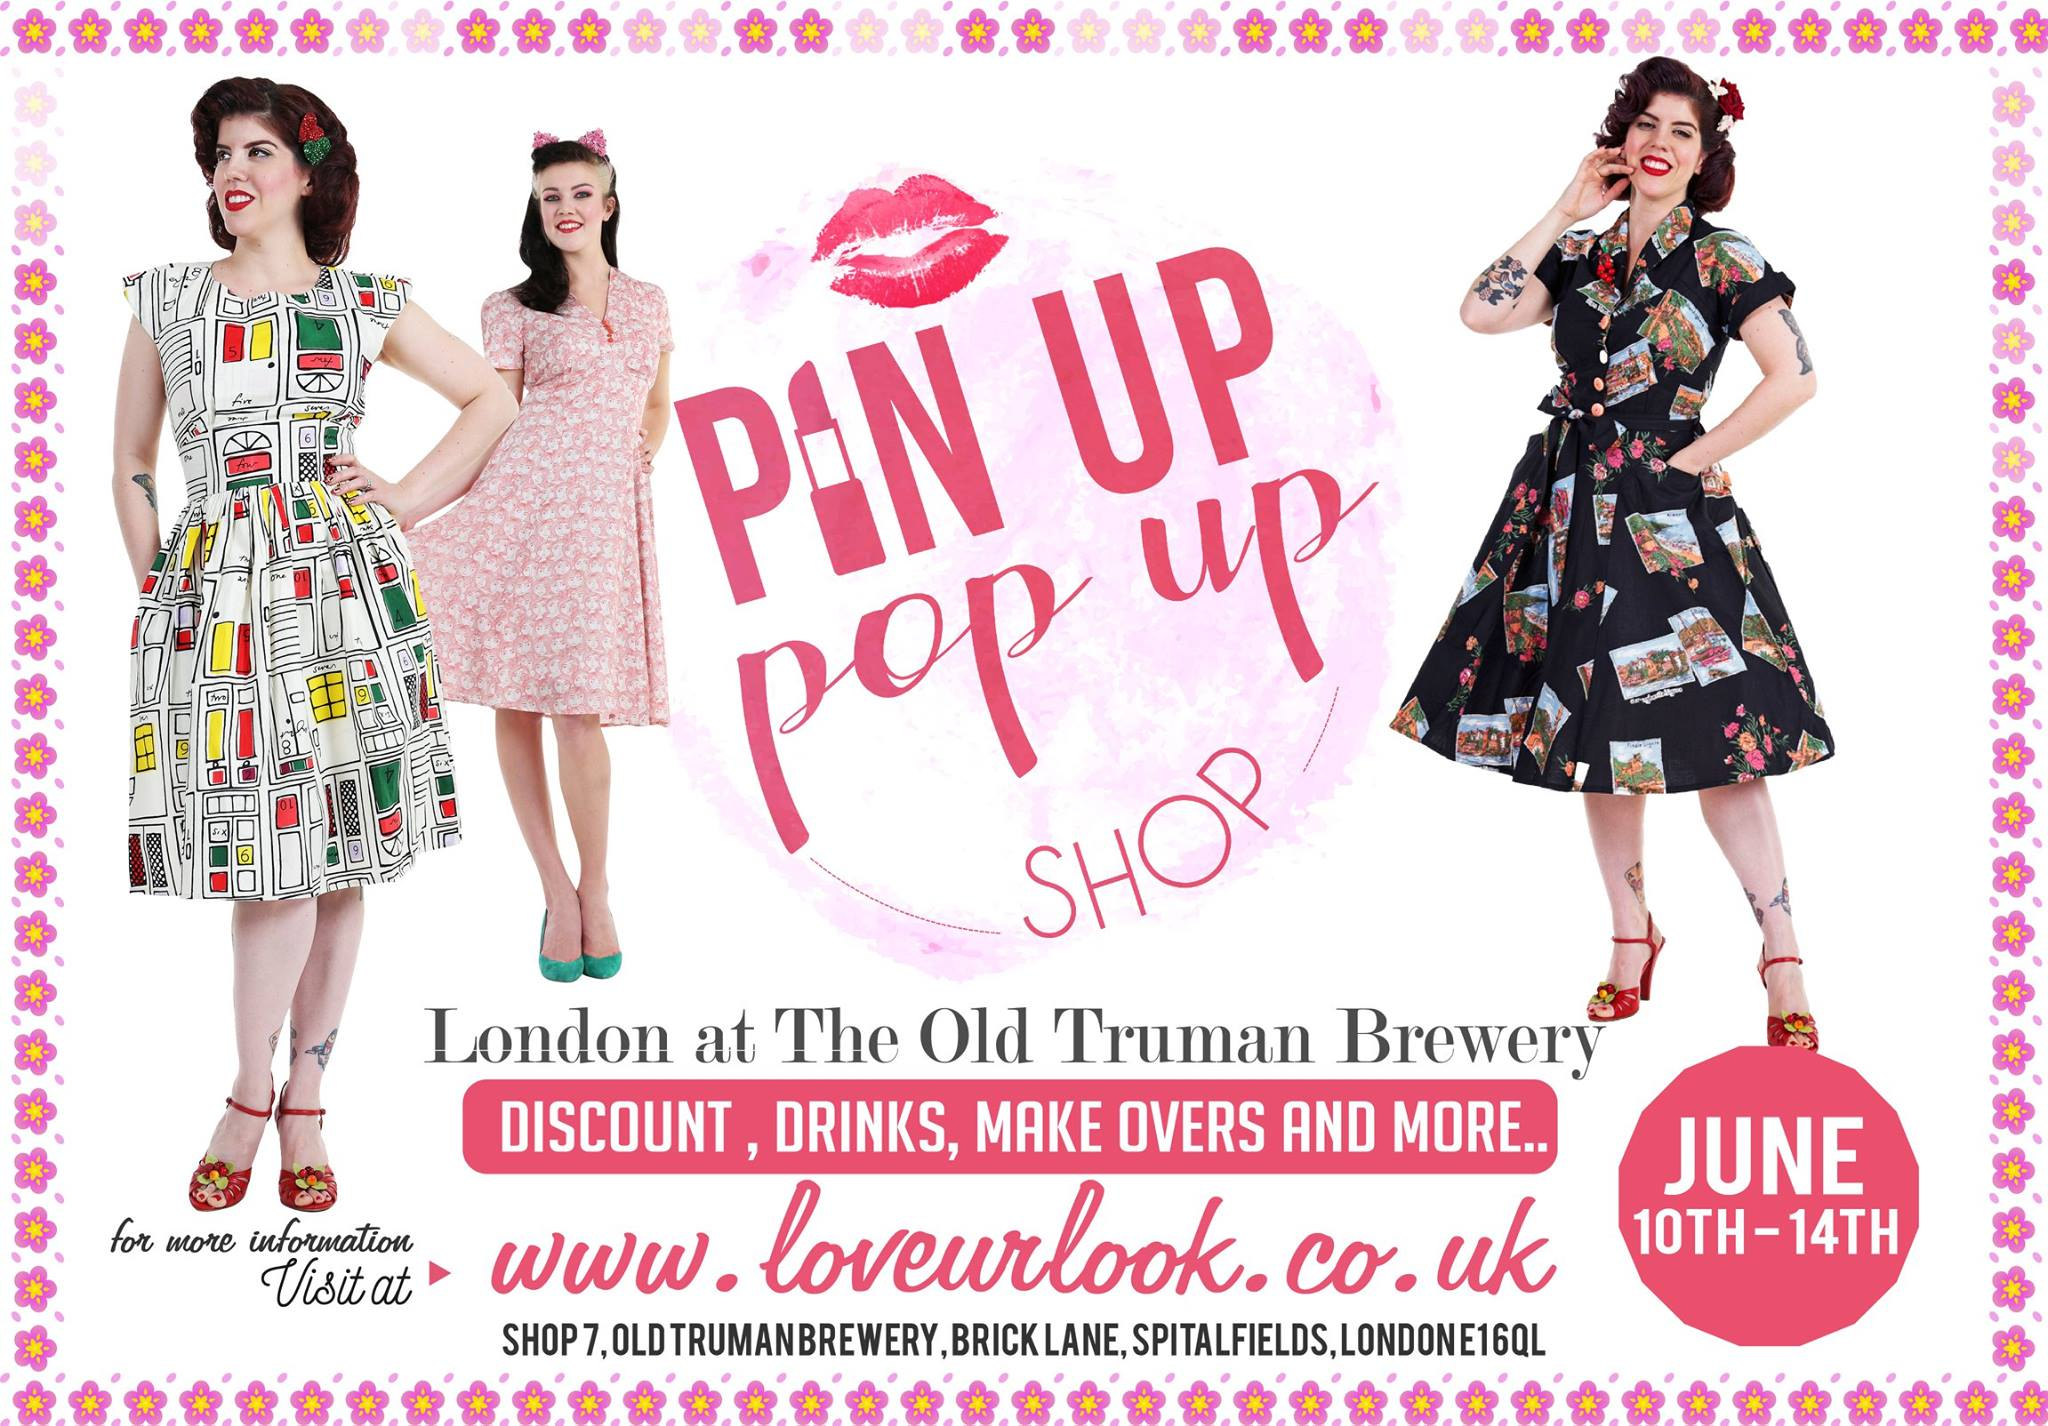 The Pin Up Pop Up Comes to London This Weekend